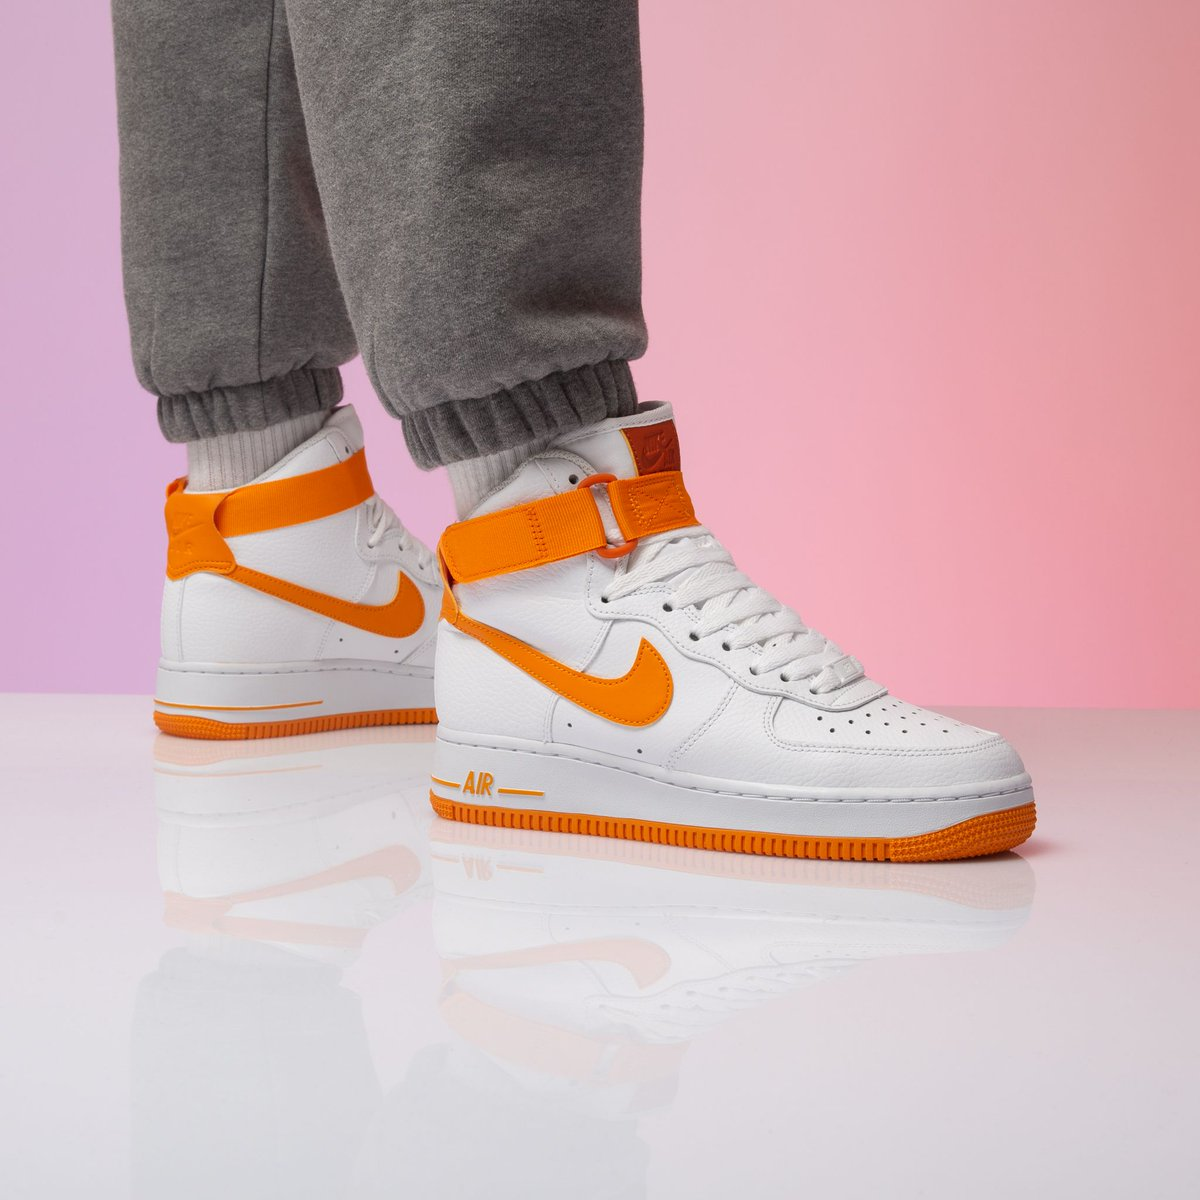 stay fly with these Nike Wmns AF1